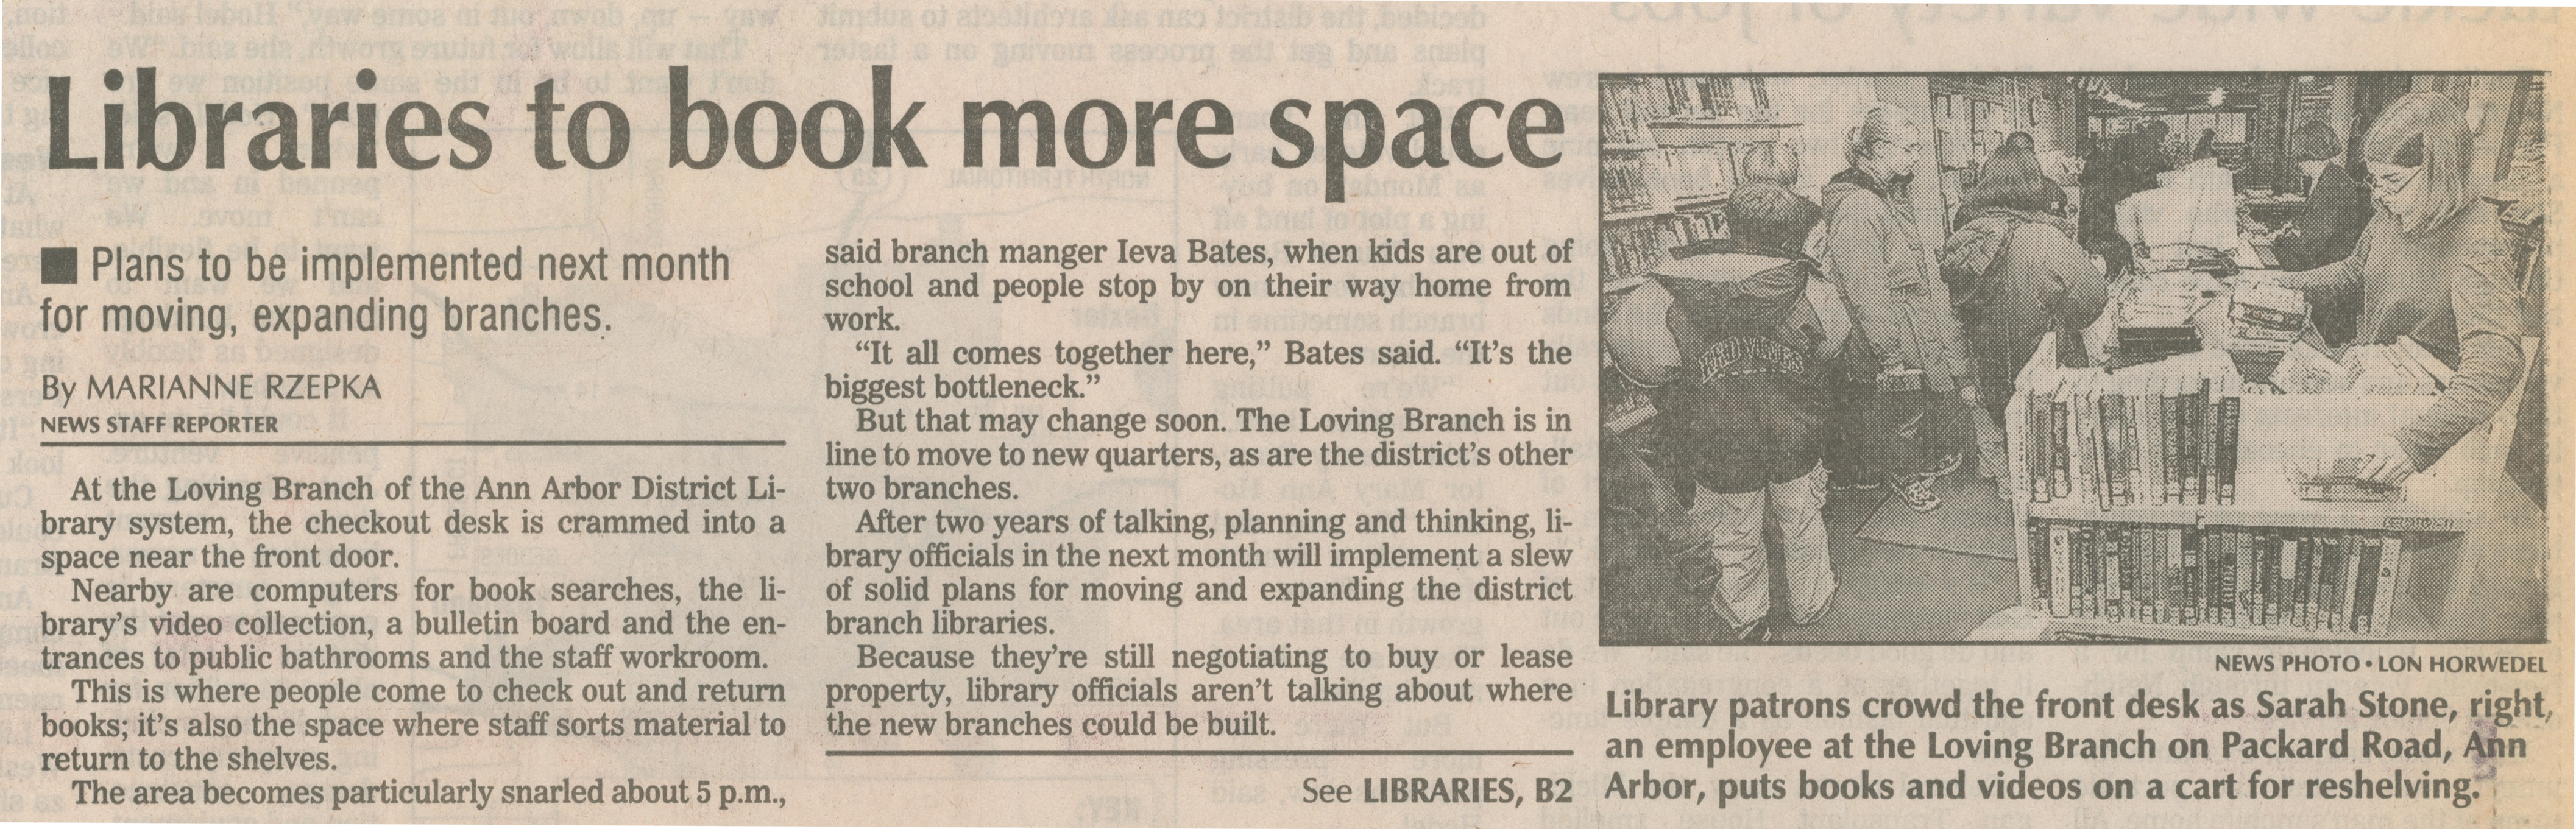 Libraries To Book More Space image